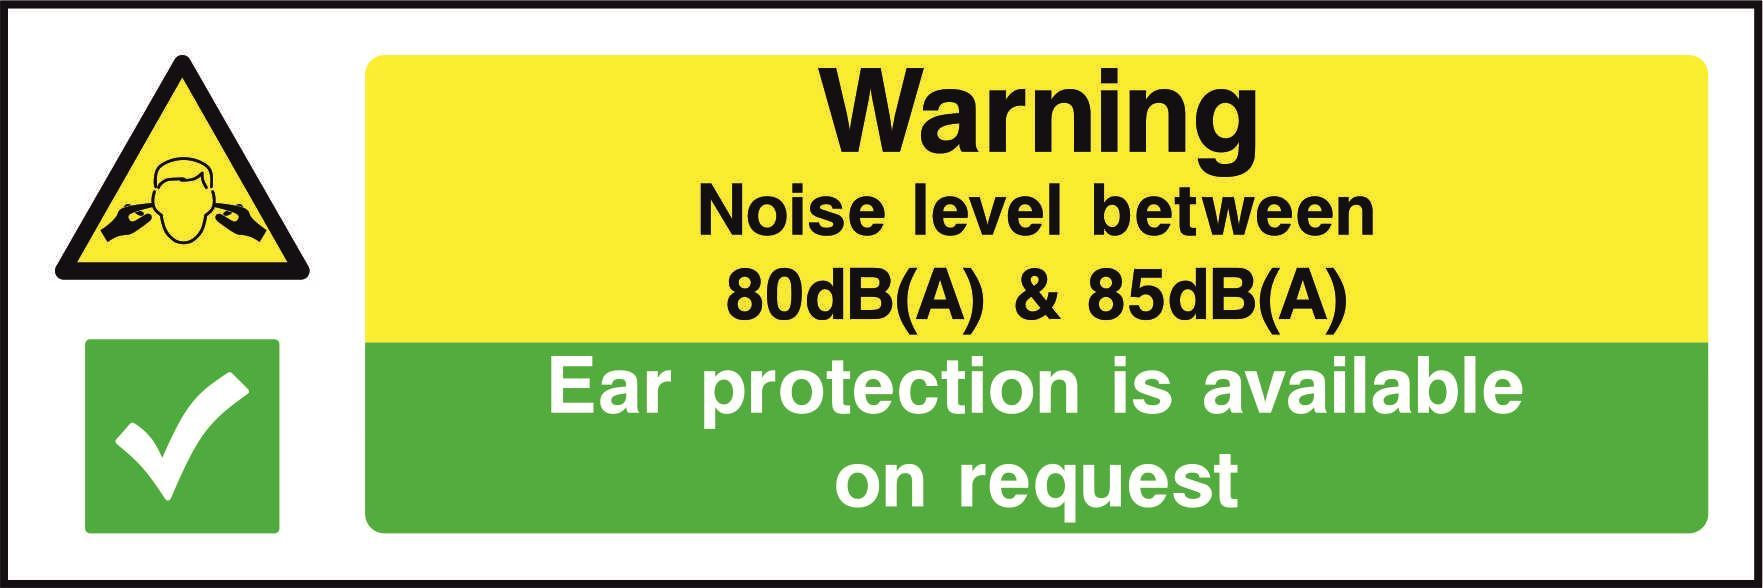 Warning Noise level between 80dB(A) and 85dB(A)